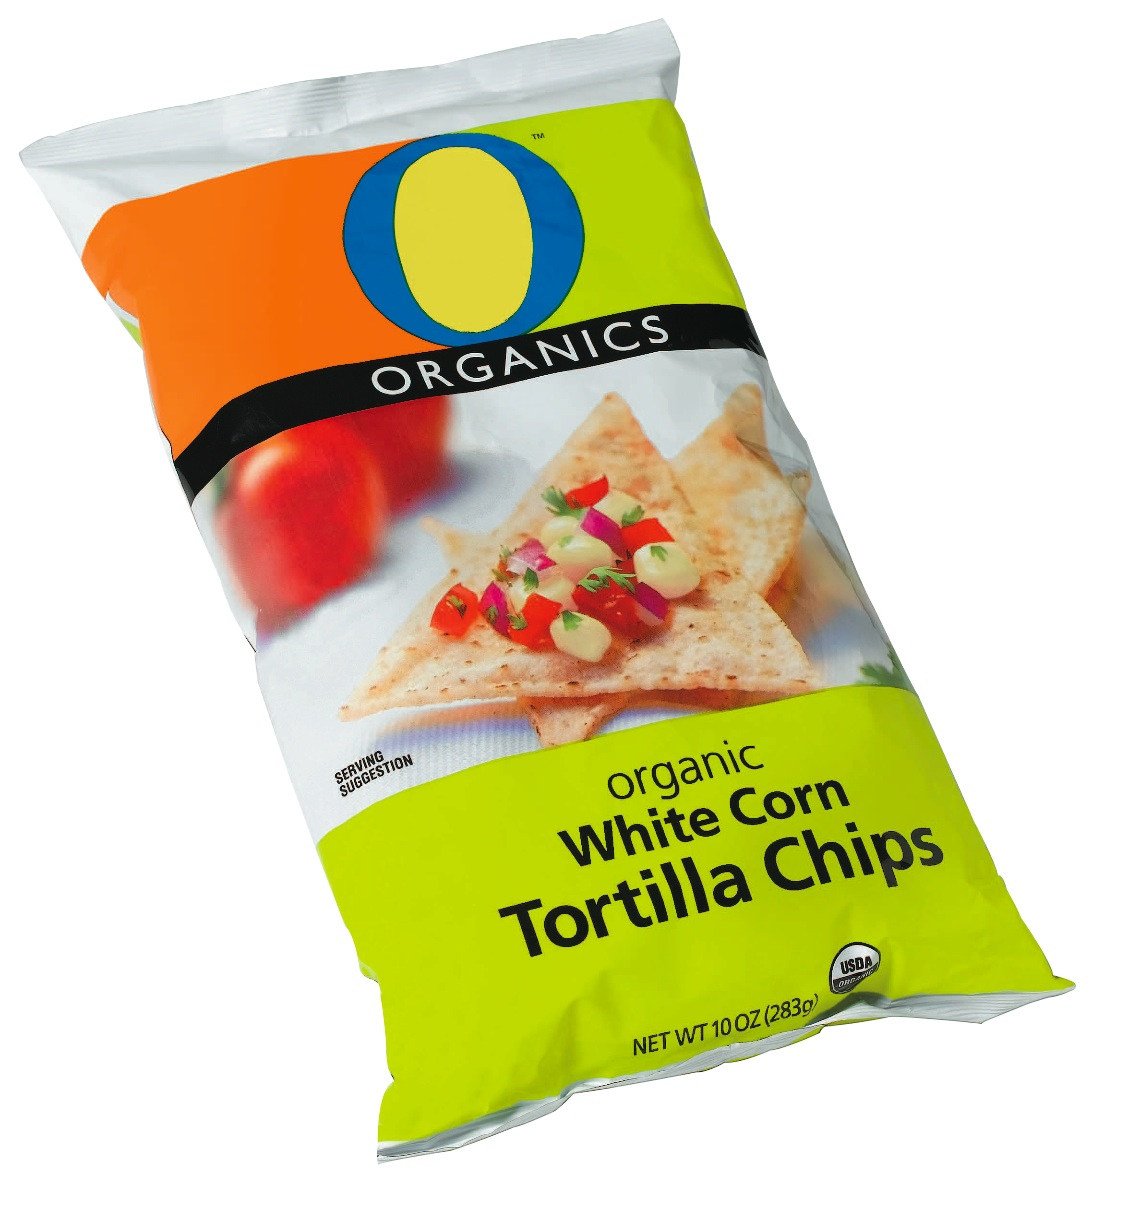 Whitetortillachips